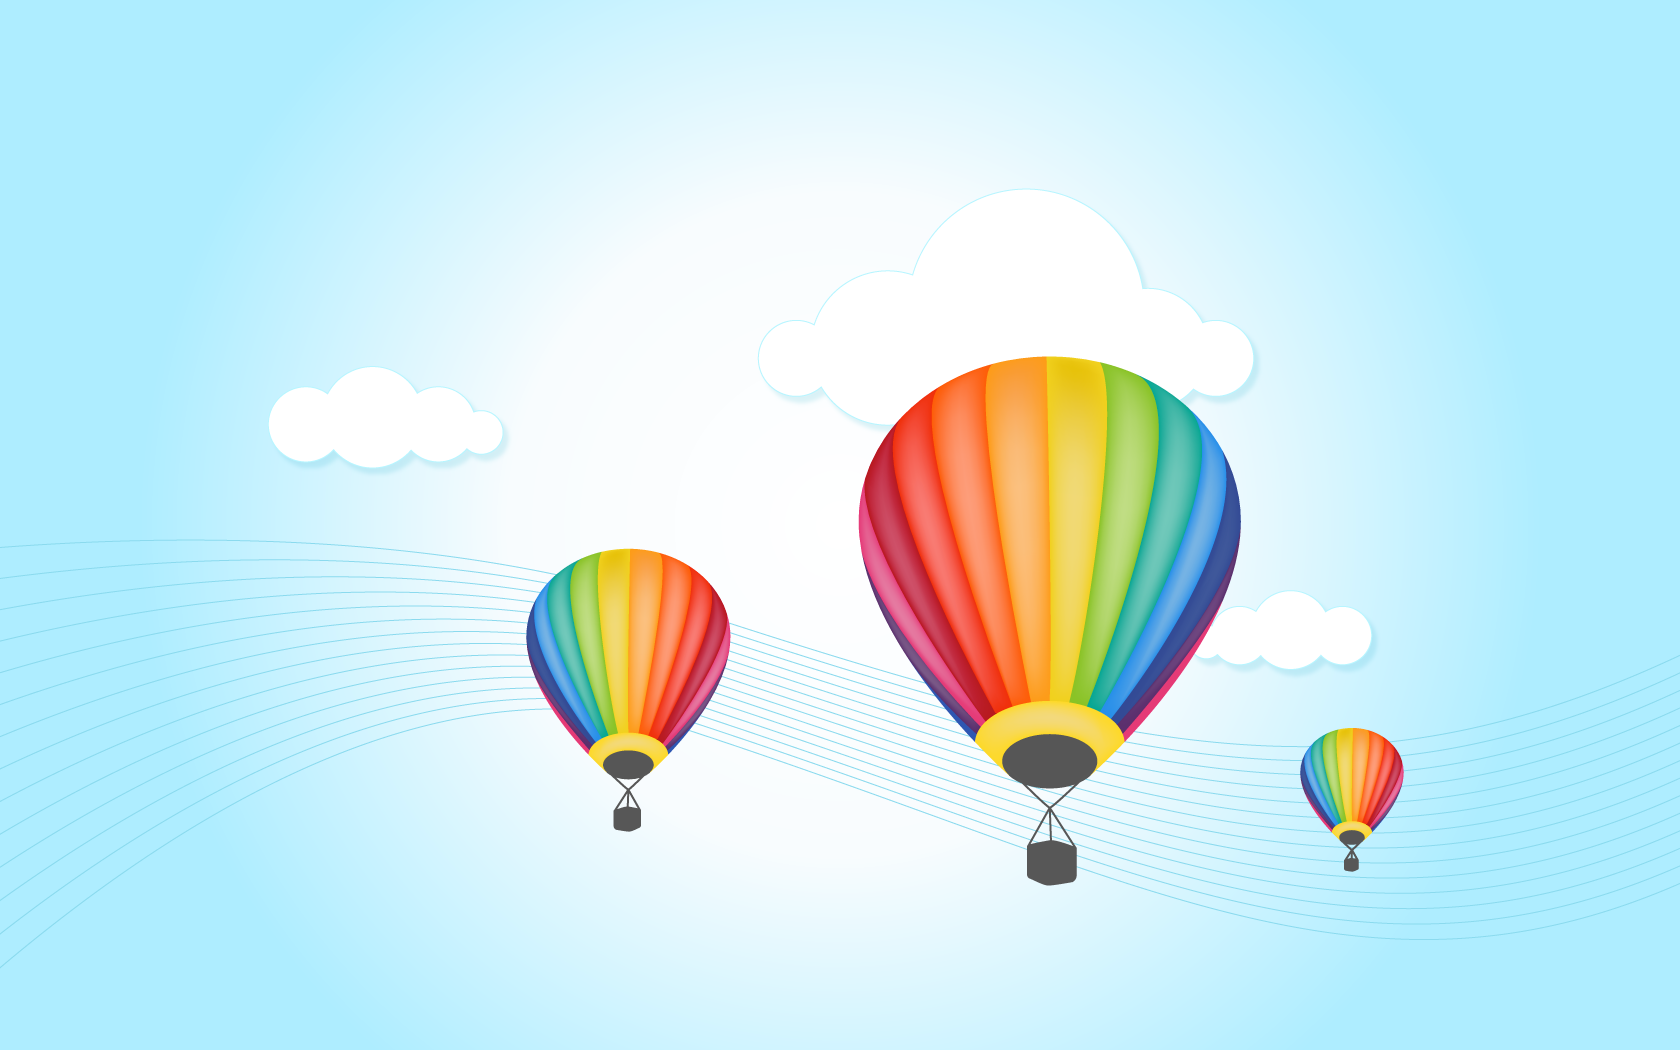 Love Balloon With cartoon Wallpaper : Free Hot Air Balloon Wallpaper - WallpaperSafari